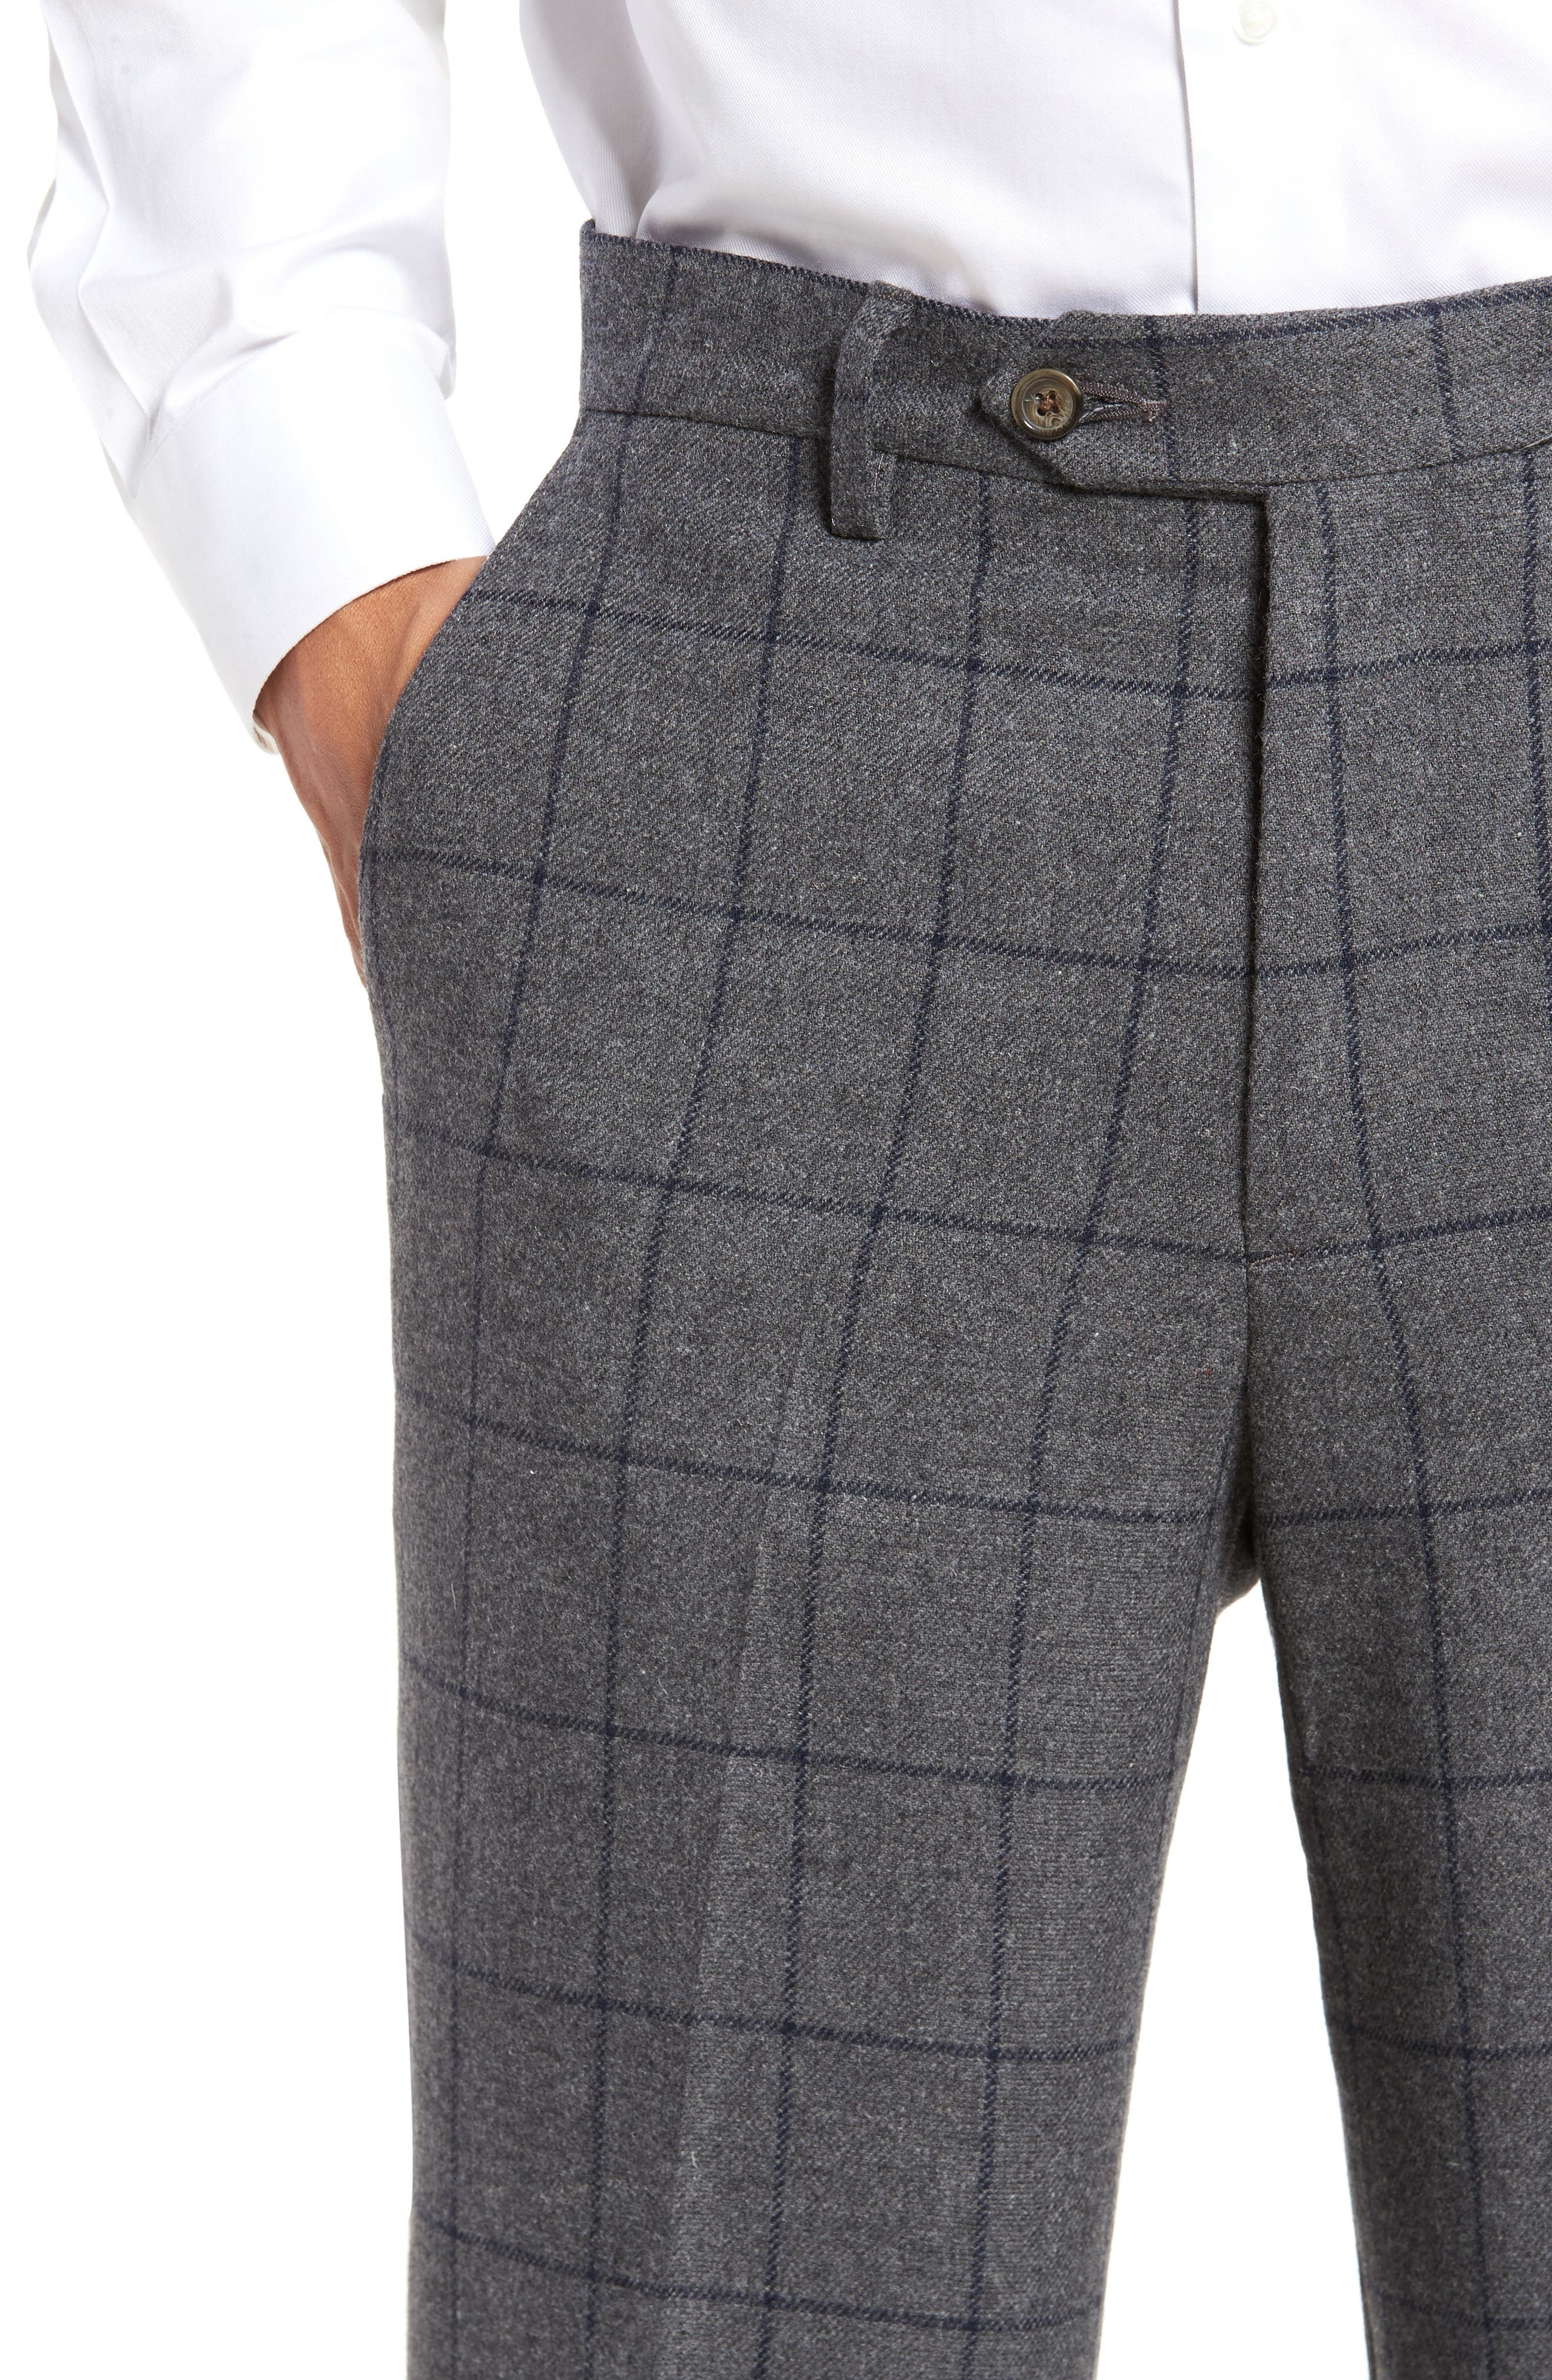 Flat Front Windowpane Wool Blend Trousers,                             Alternate thumbnail 5, color,                             030